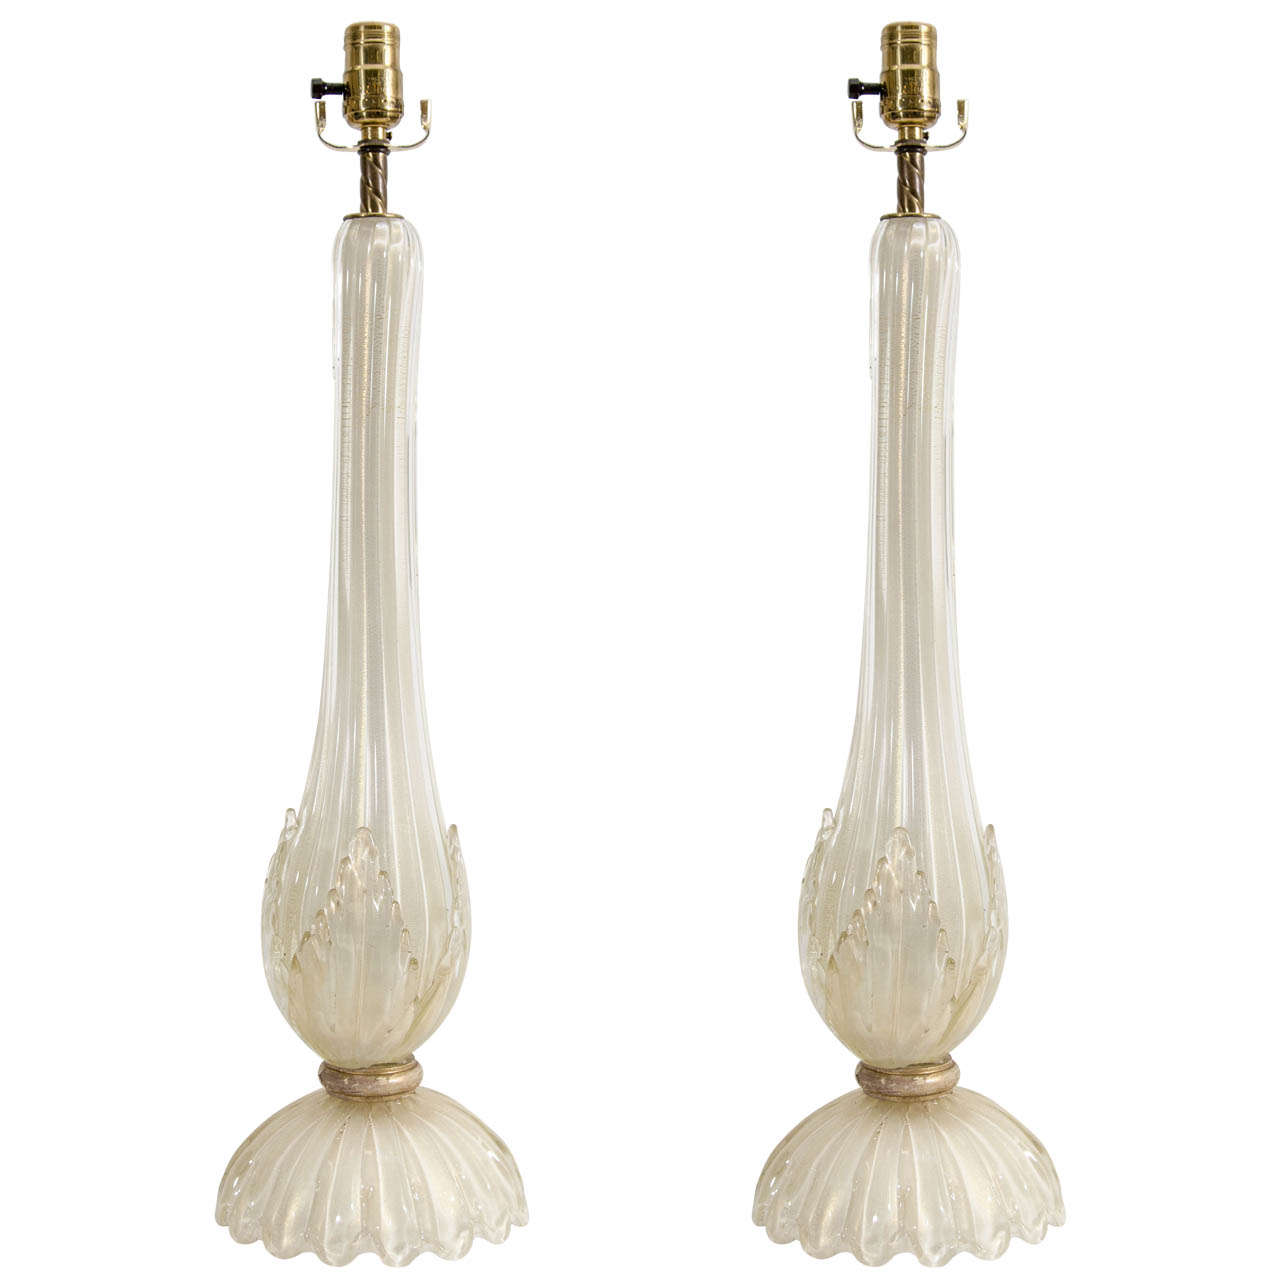 A Midcentury Pair of Barovier & Toso Murano Glass Lamps